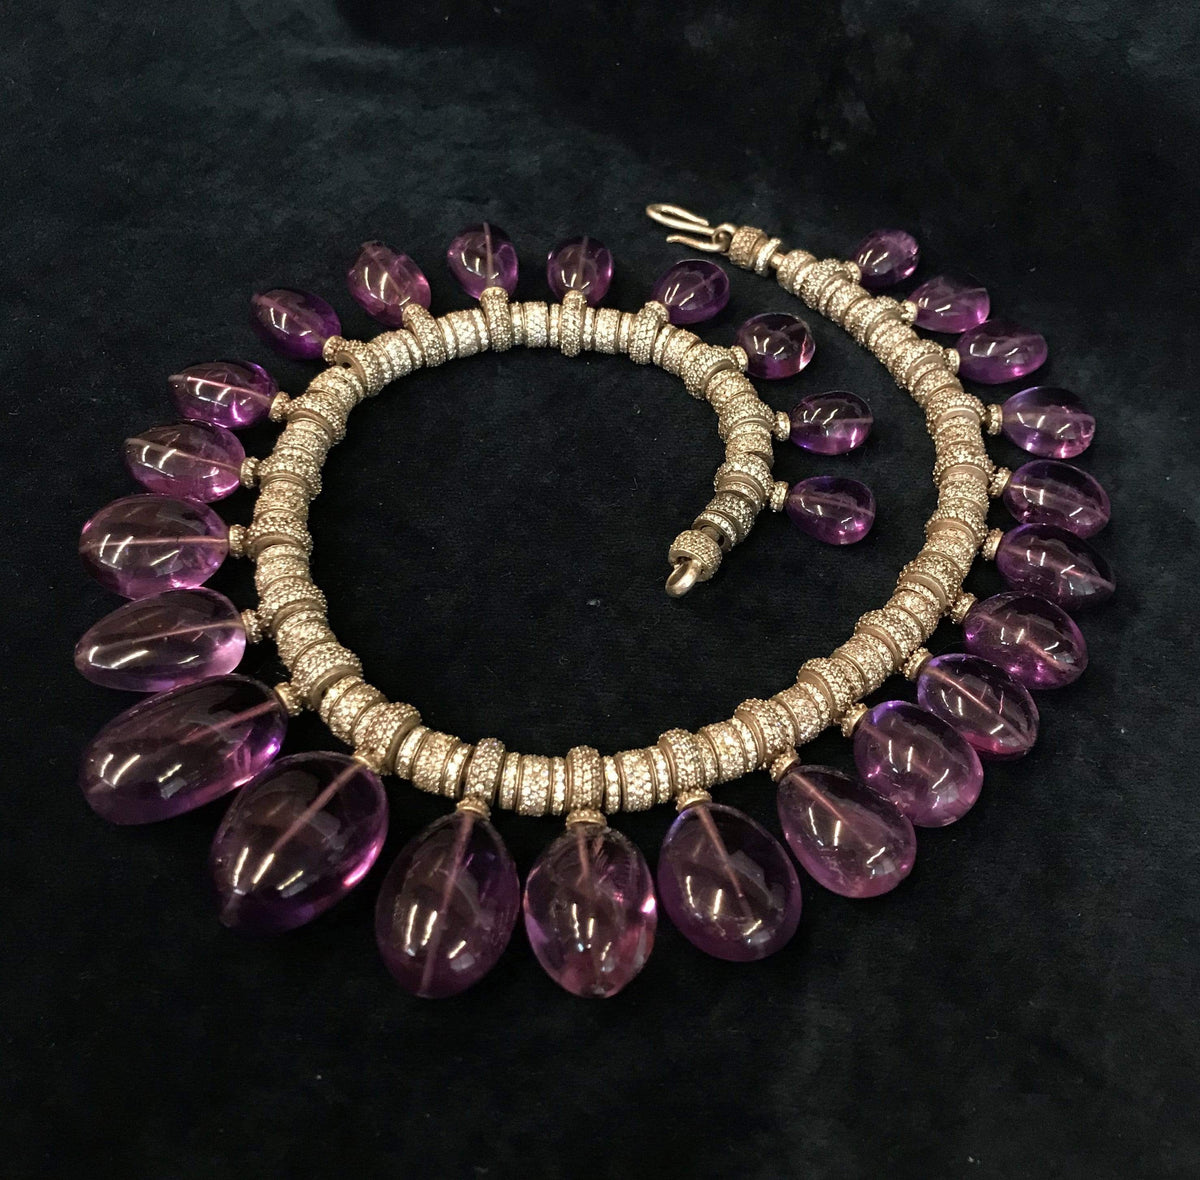 Tarun Tahiliani Necklaces Amethyst drops Necklace